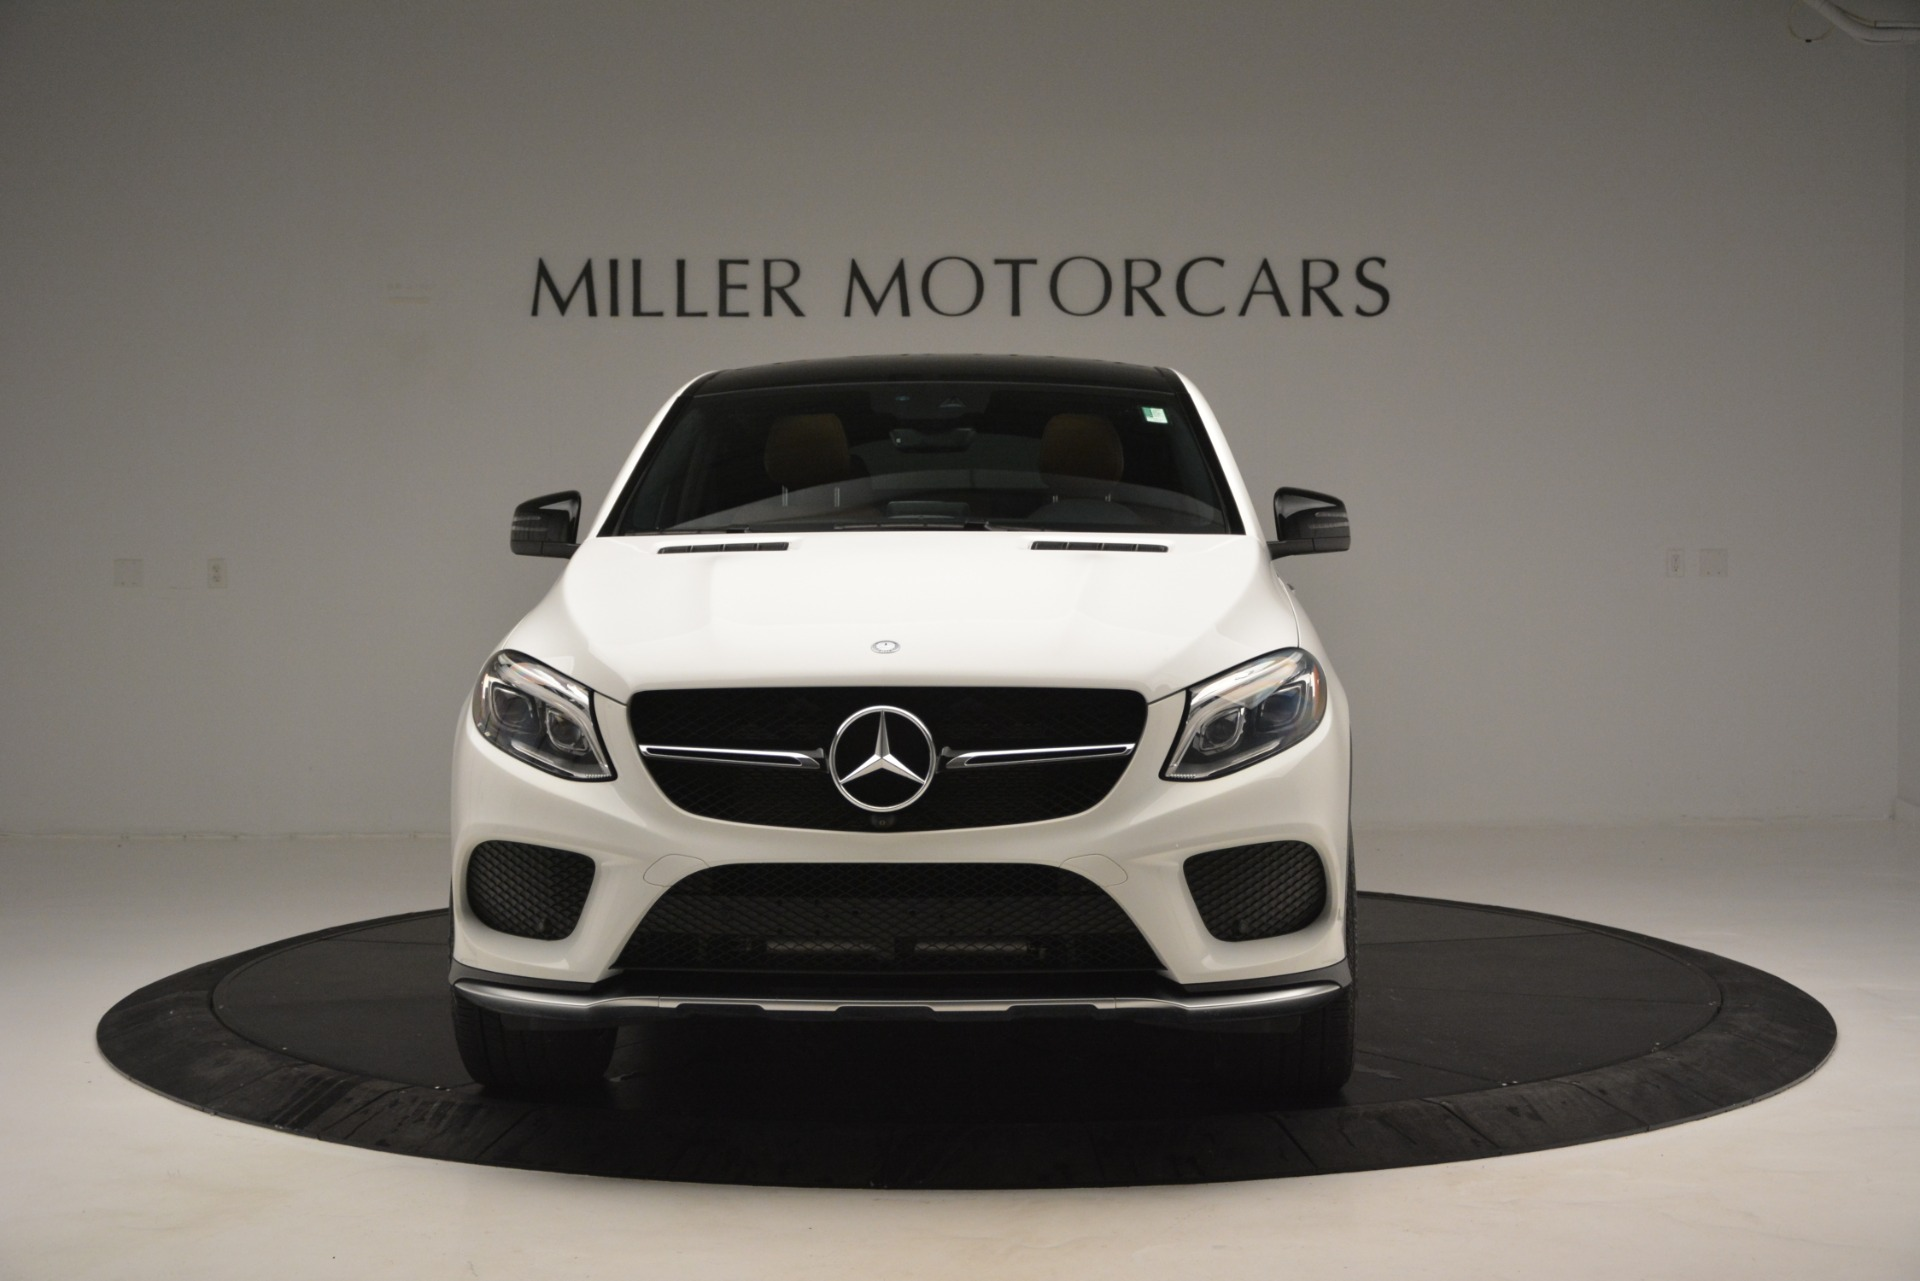 Used 2016 Mercedes-Benz GLE 450 AMG Coupe 4MATIC For Sale In Westport, CT 2787_p12